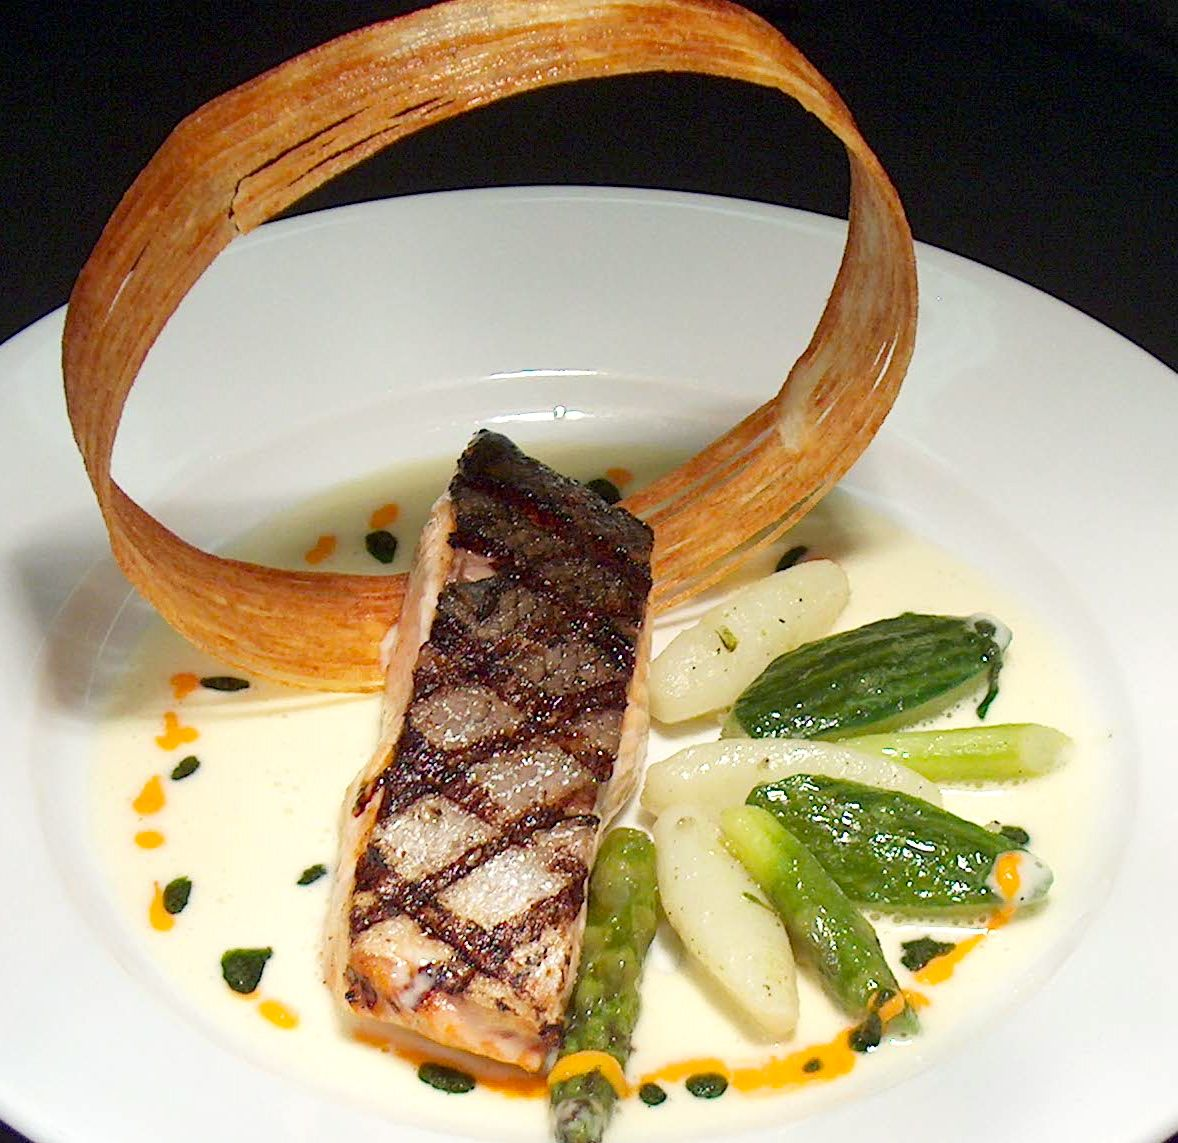 Food plating idea grilled salmon with a potato ring worldwide food plating idea grilled salmon with a potato ring fandeluxe Choice Image